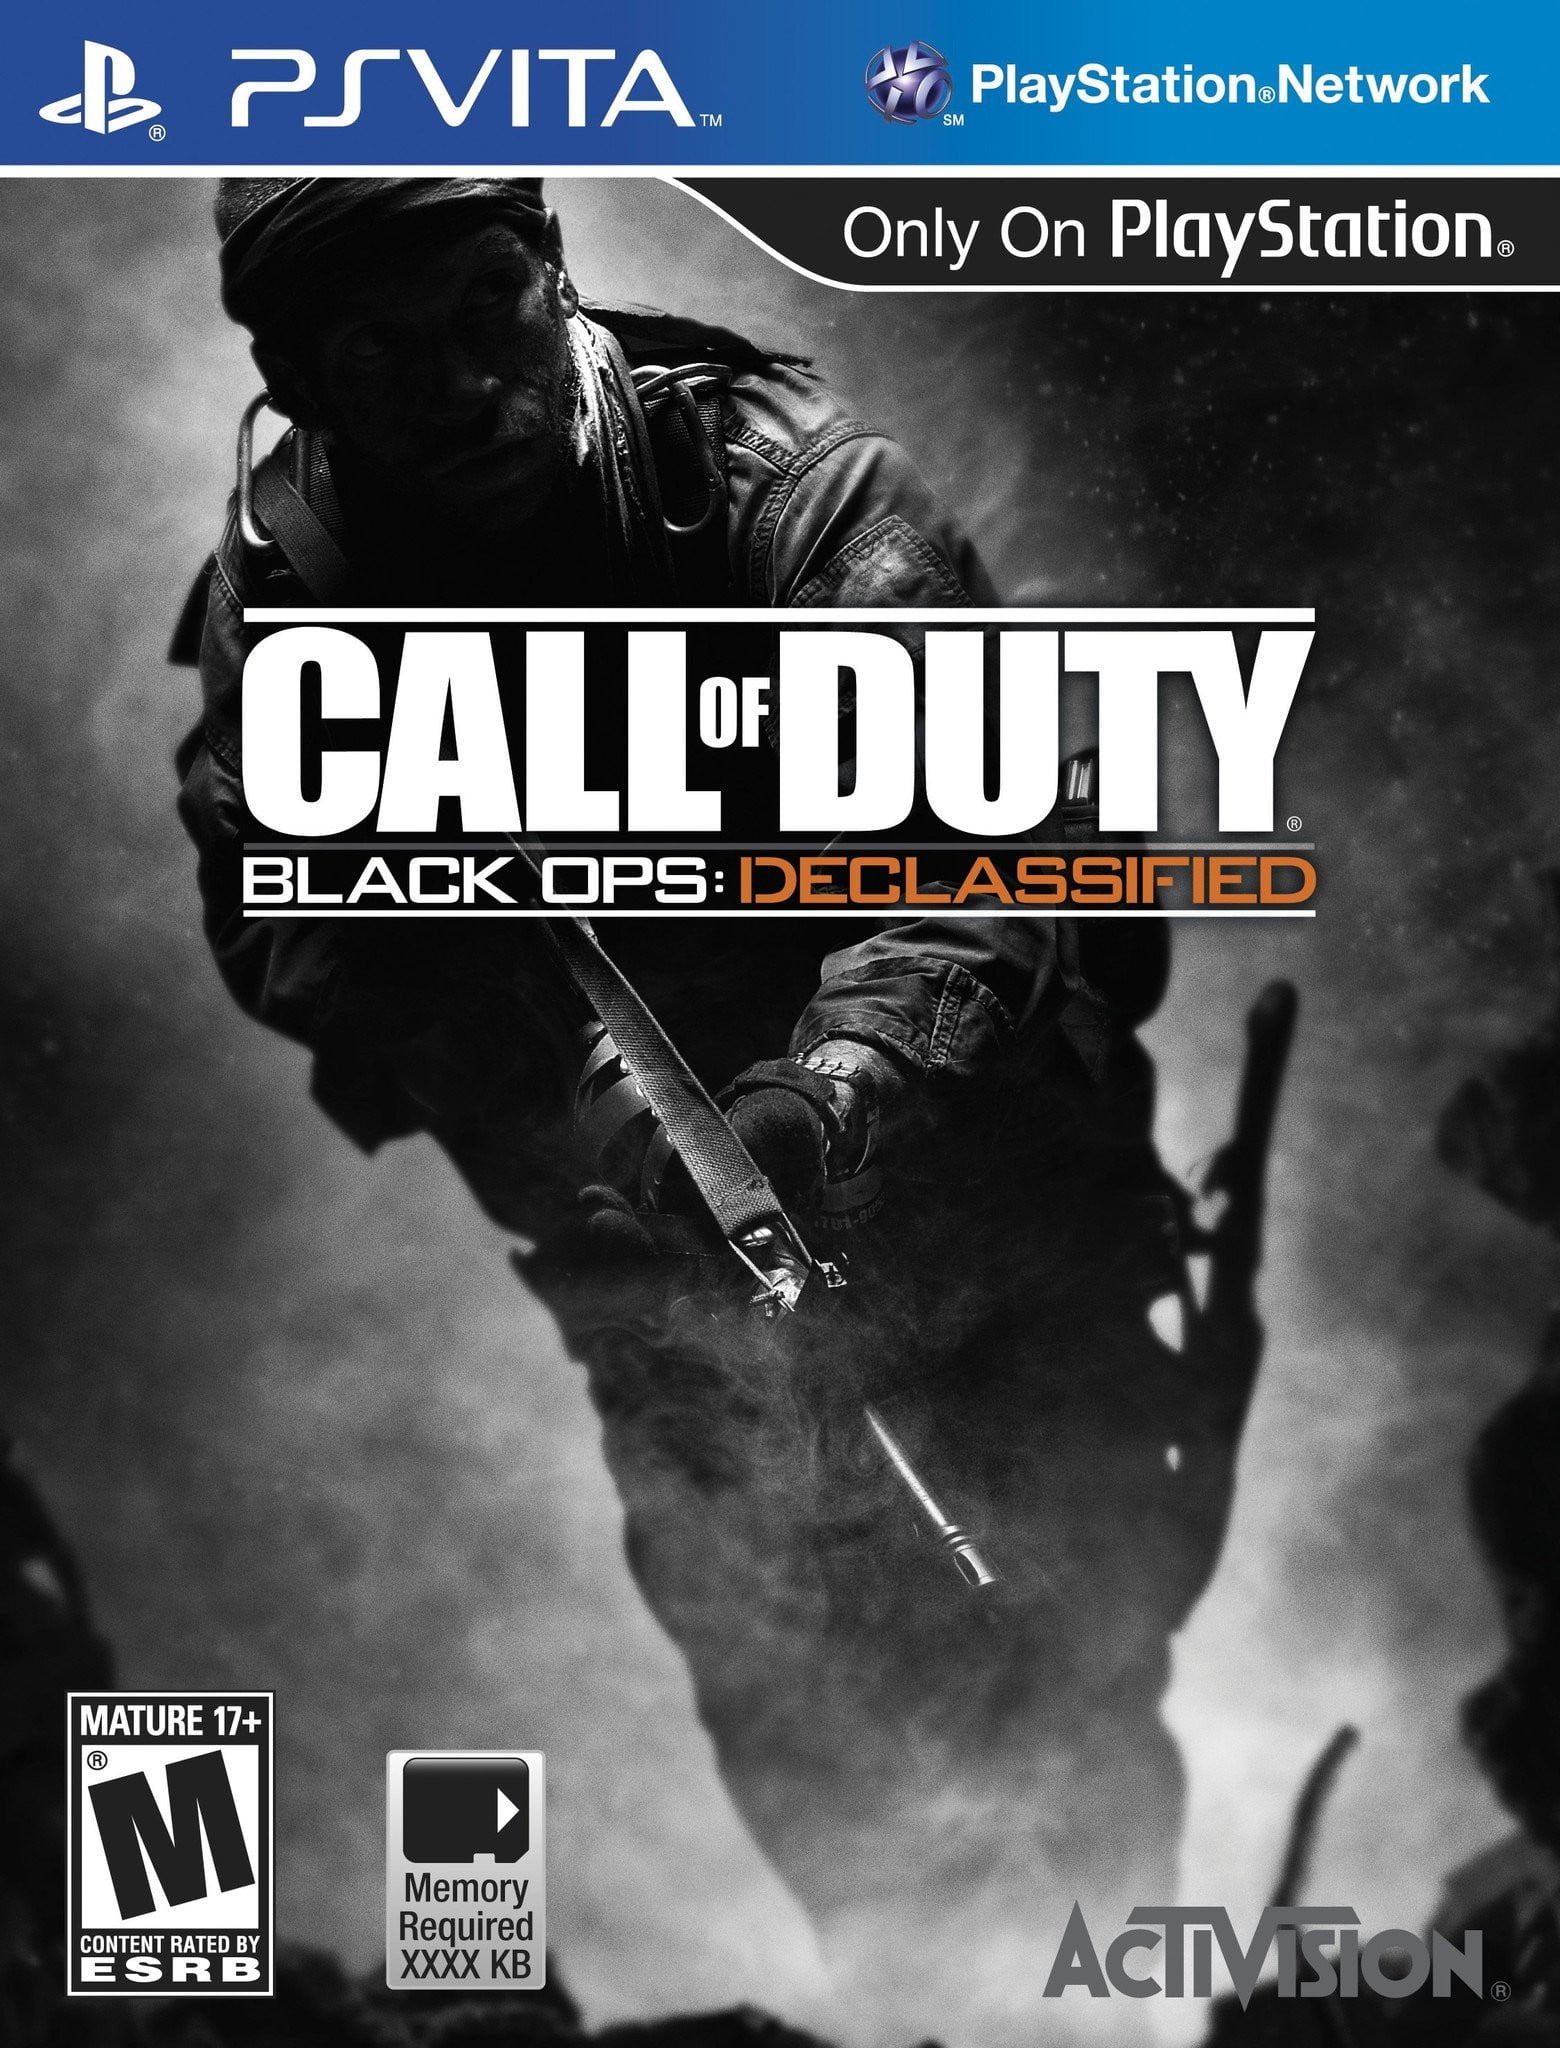 Buy Call of Duty: Black Ops PS Vita in Egypt - Shamy Stores